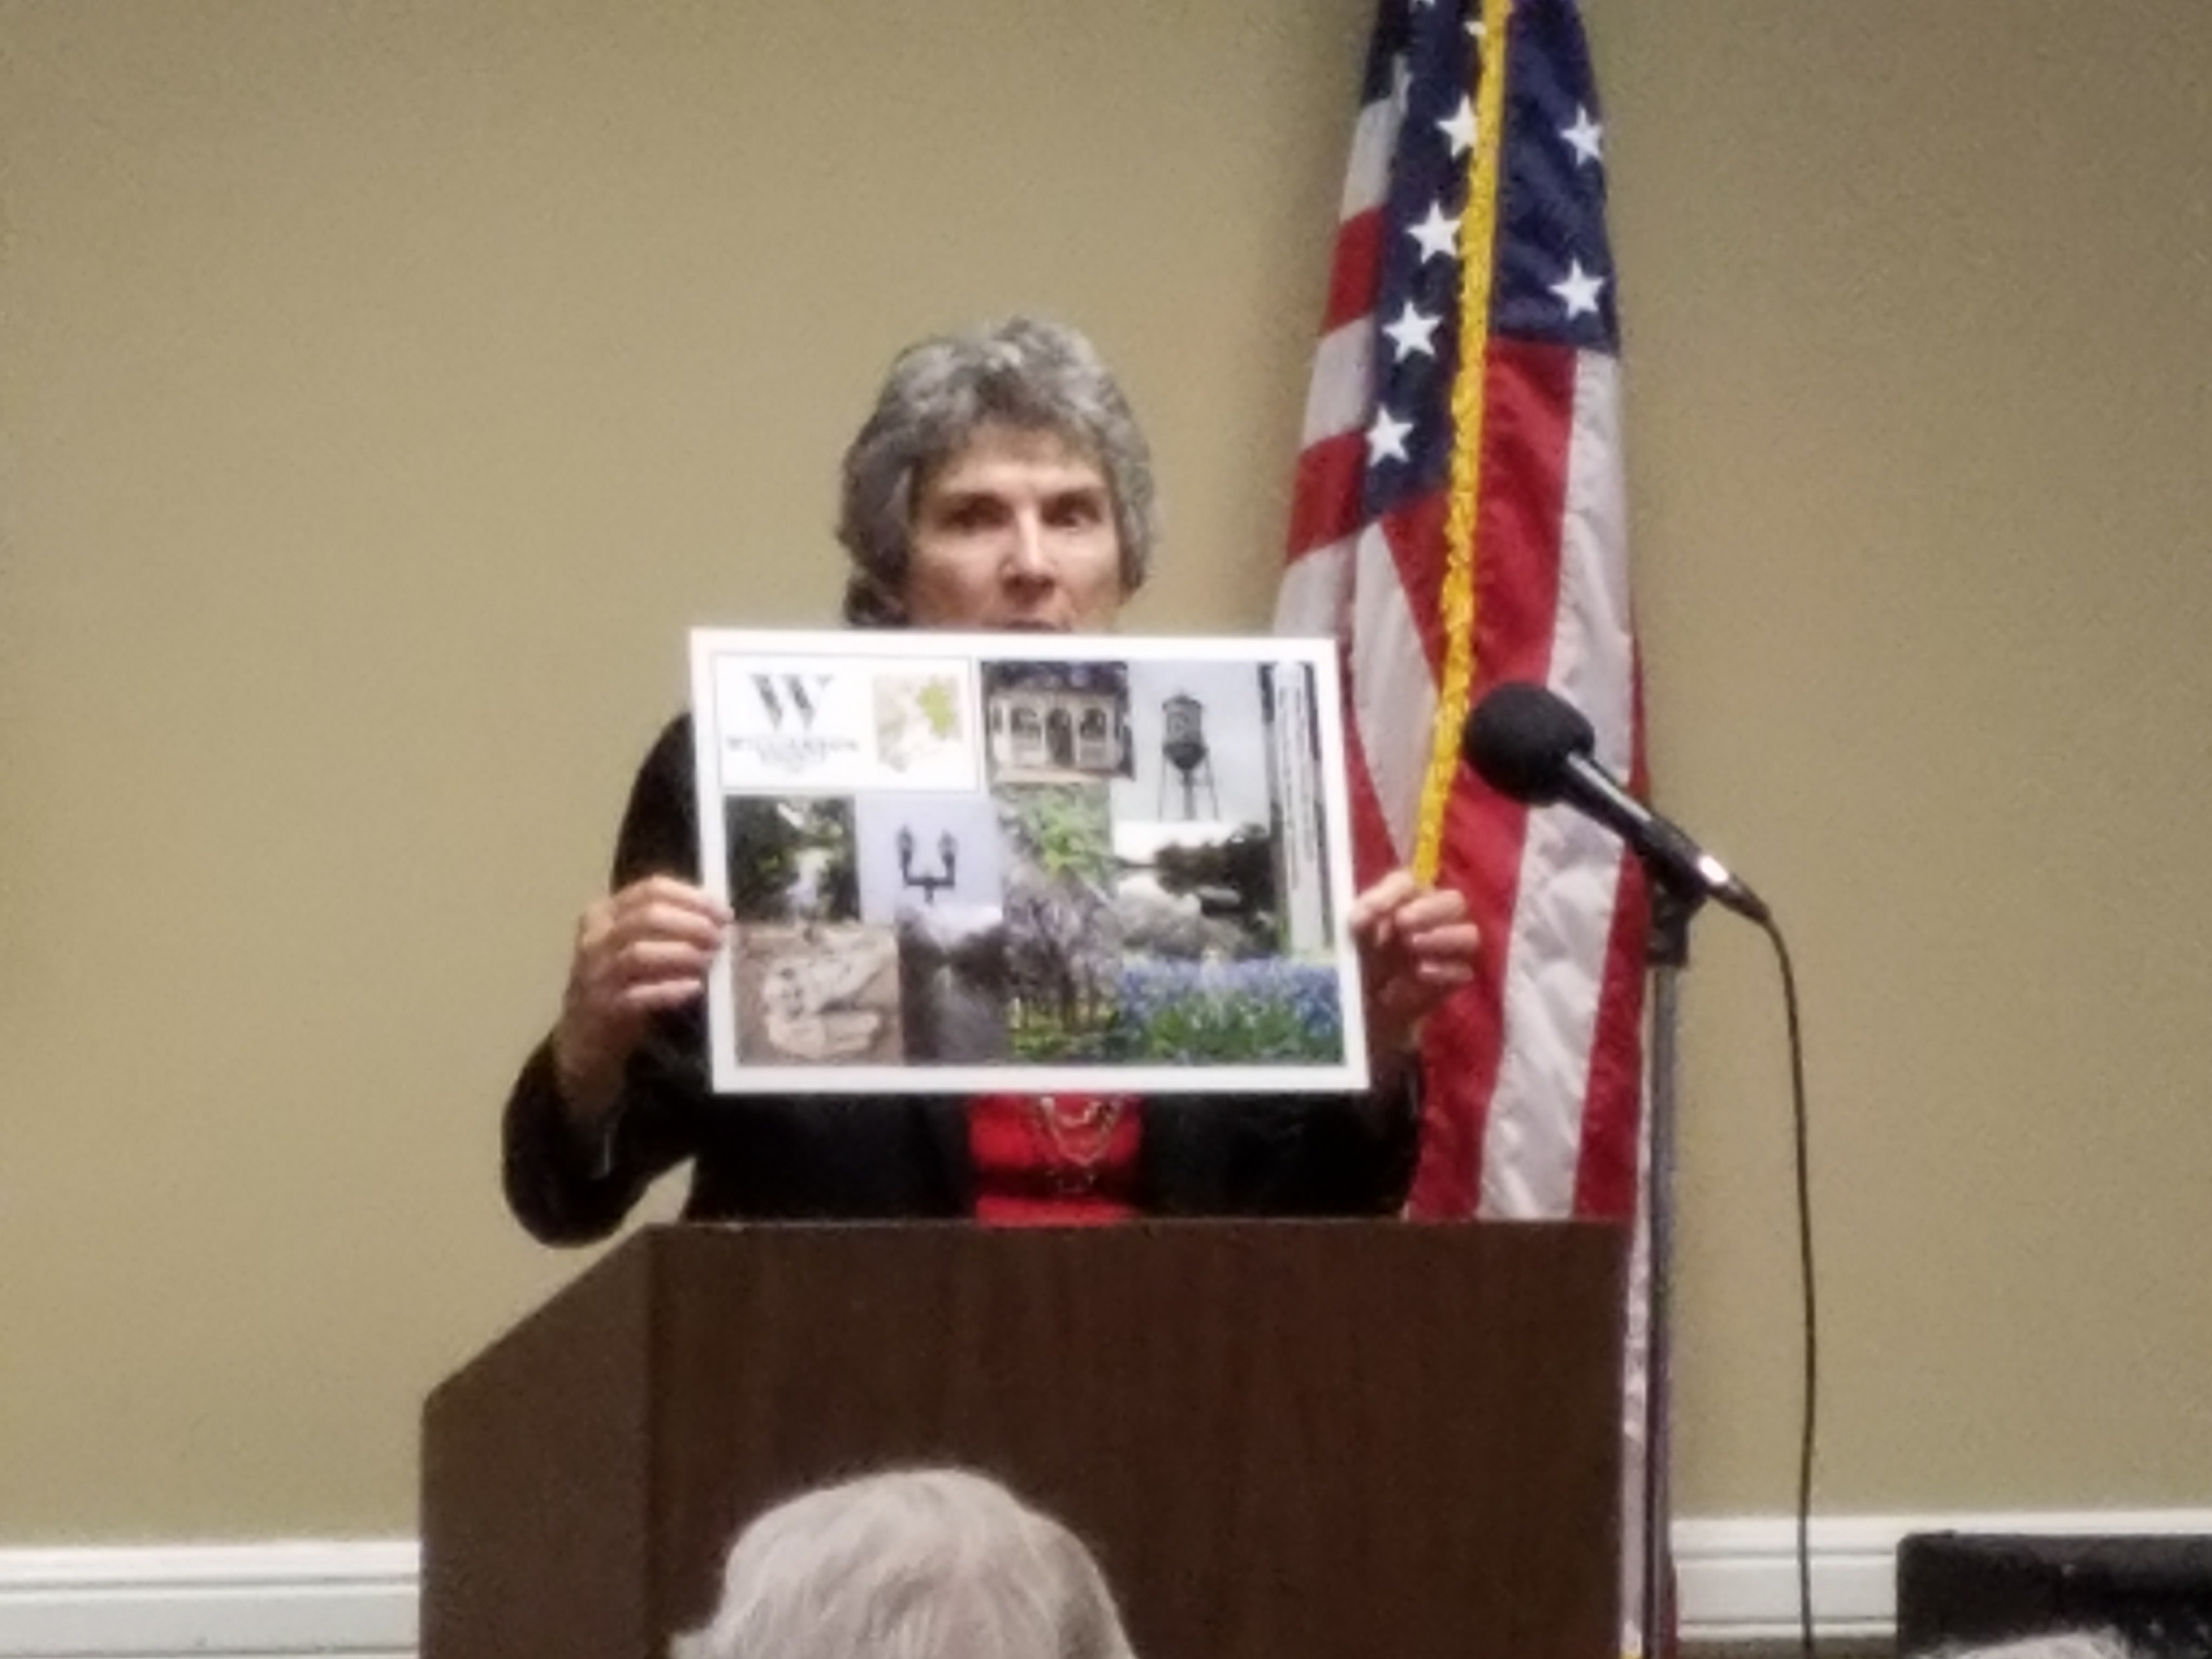 Commissioner Cook holds up the front side of a Senior Fraud Prevention Placemat.